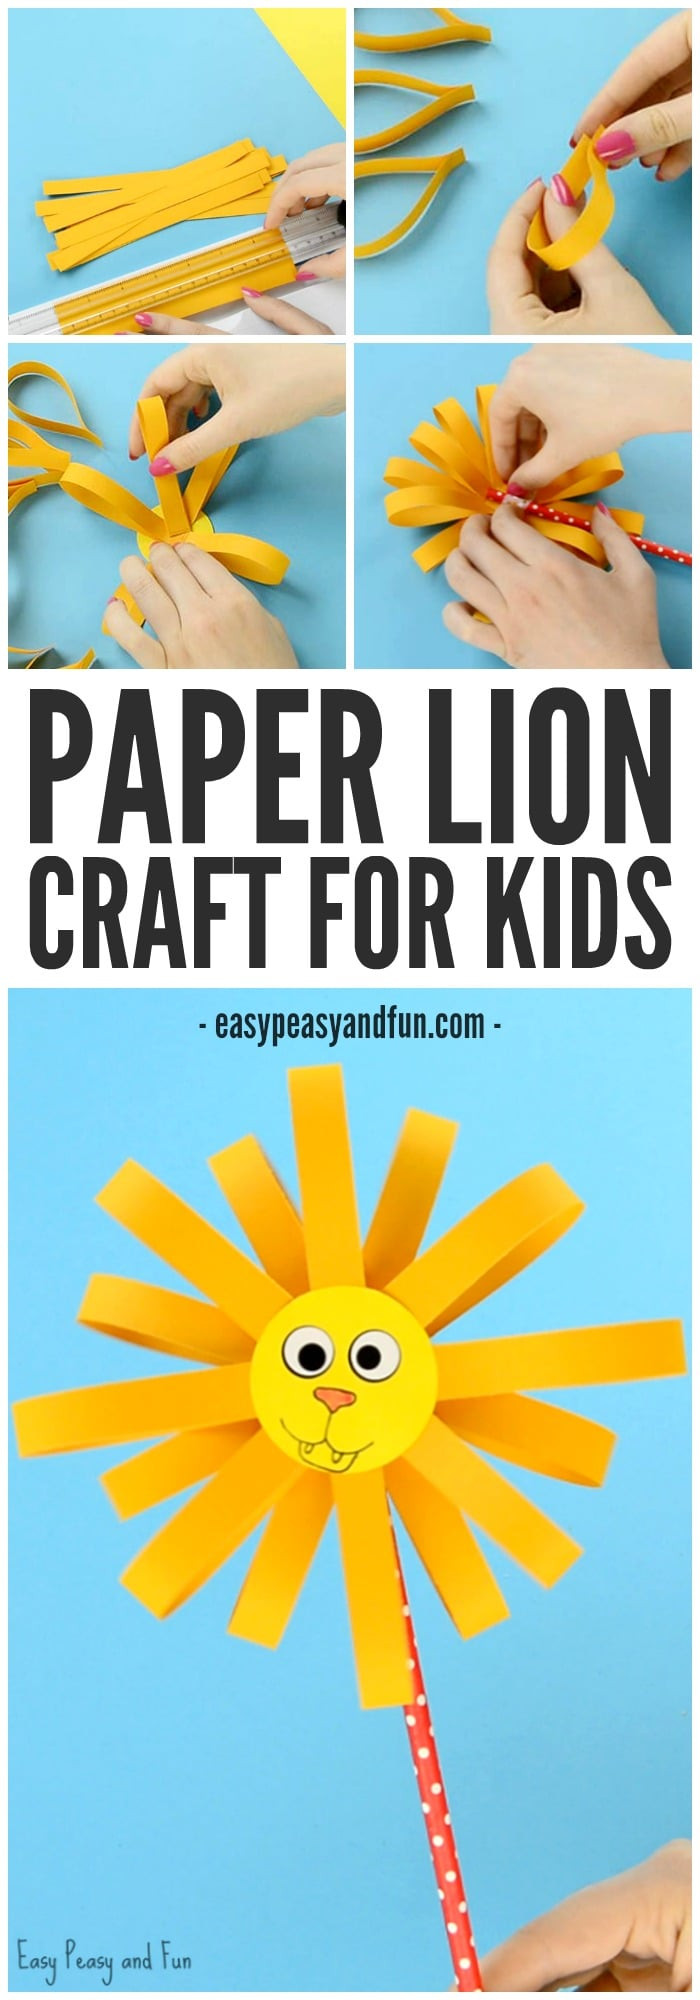 Best ideas about Crafts To Make For Kids . Save or Pin Paper Lion Craft Easy Peasy and Fun Now.